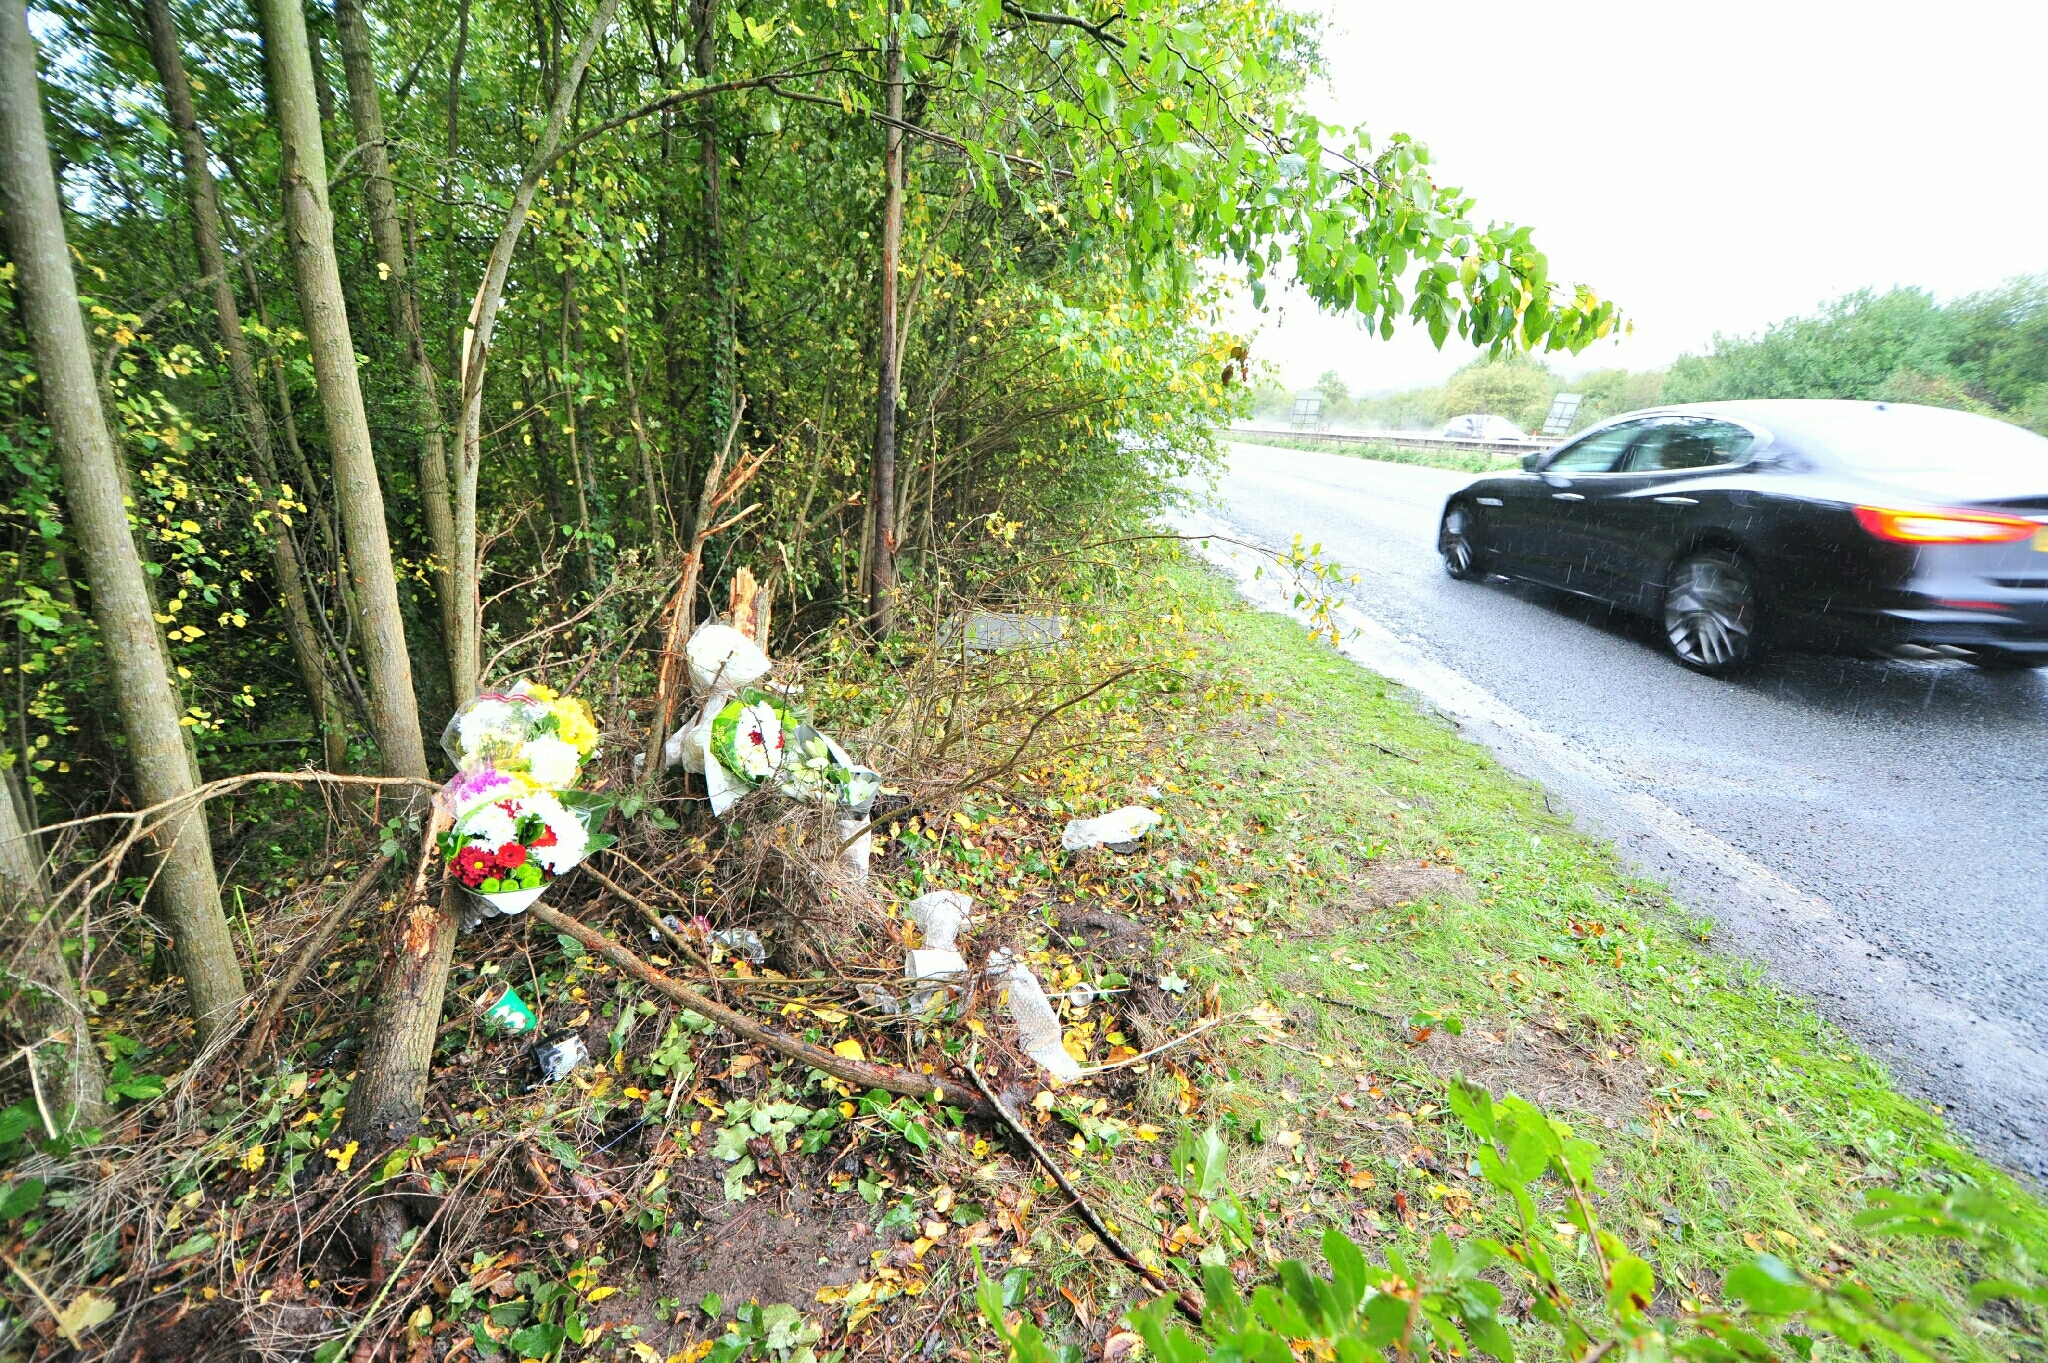 Inquest opens into motorcyclist who died following crash on A449 Worcester